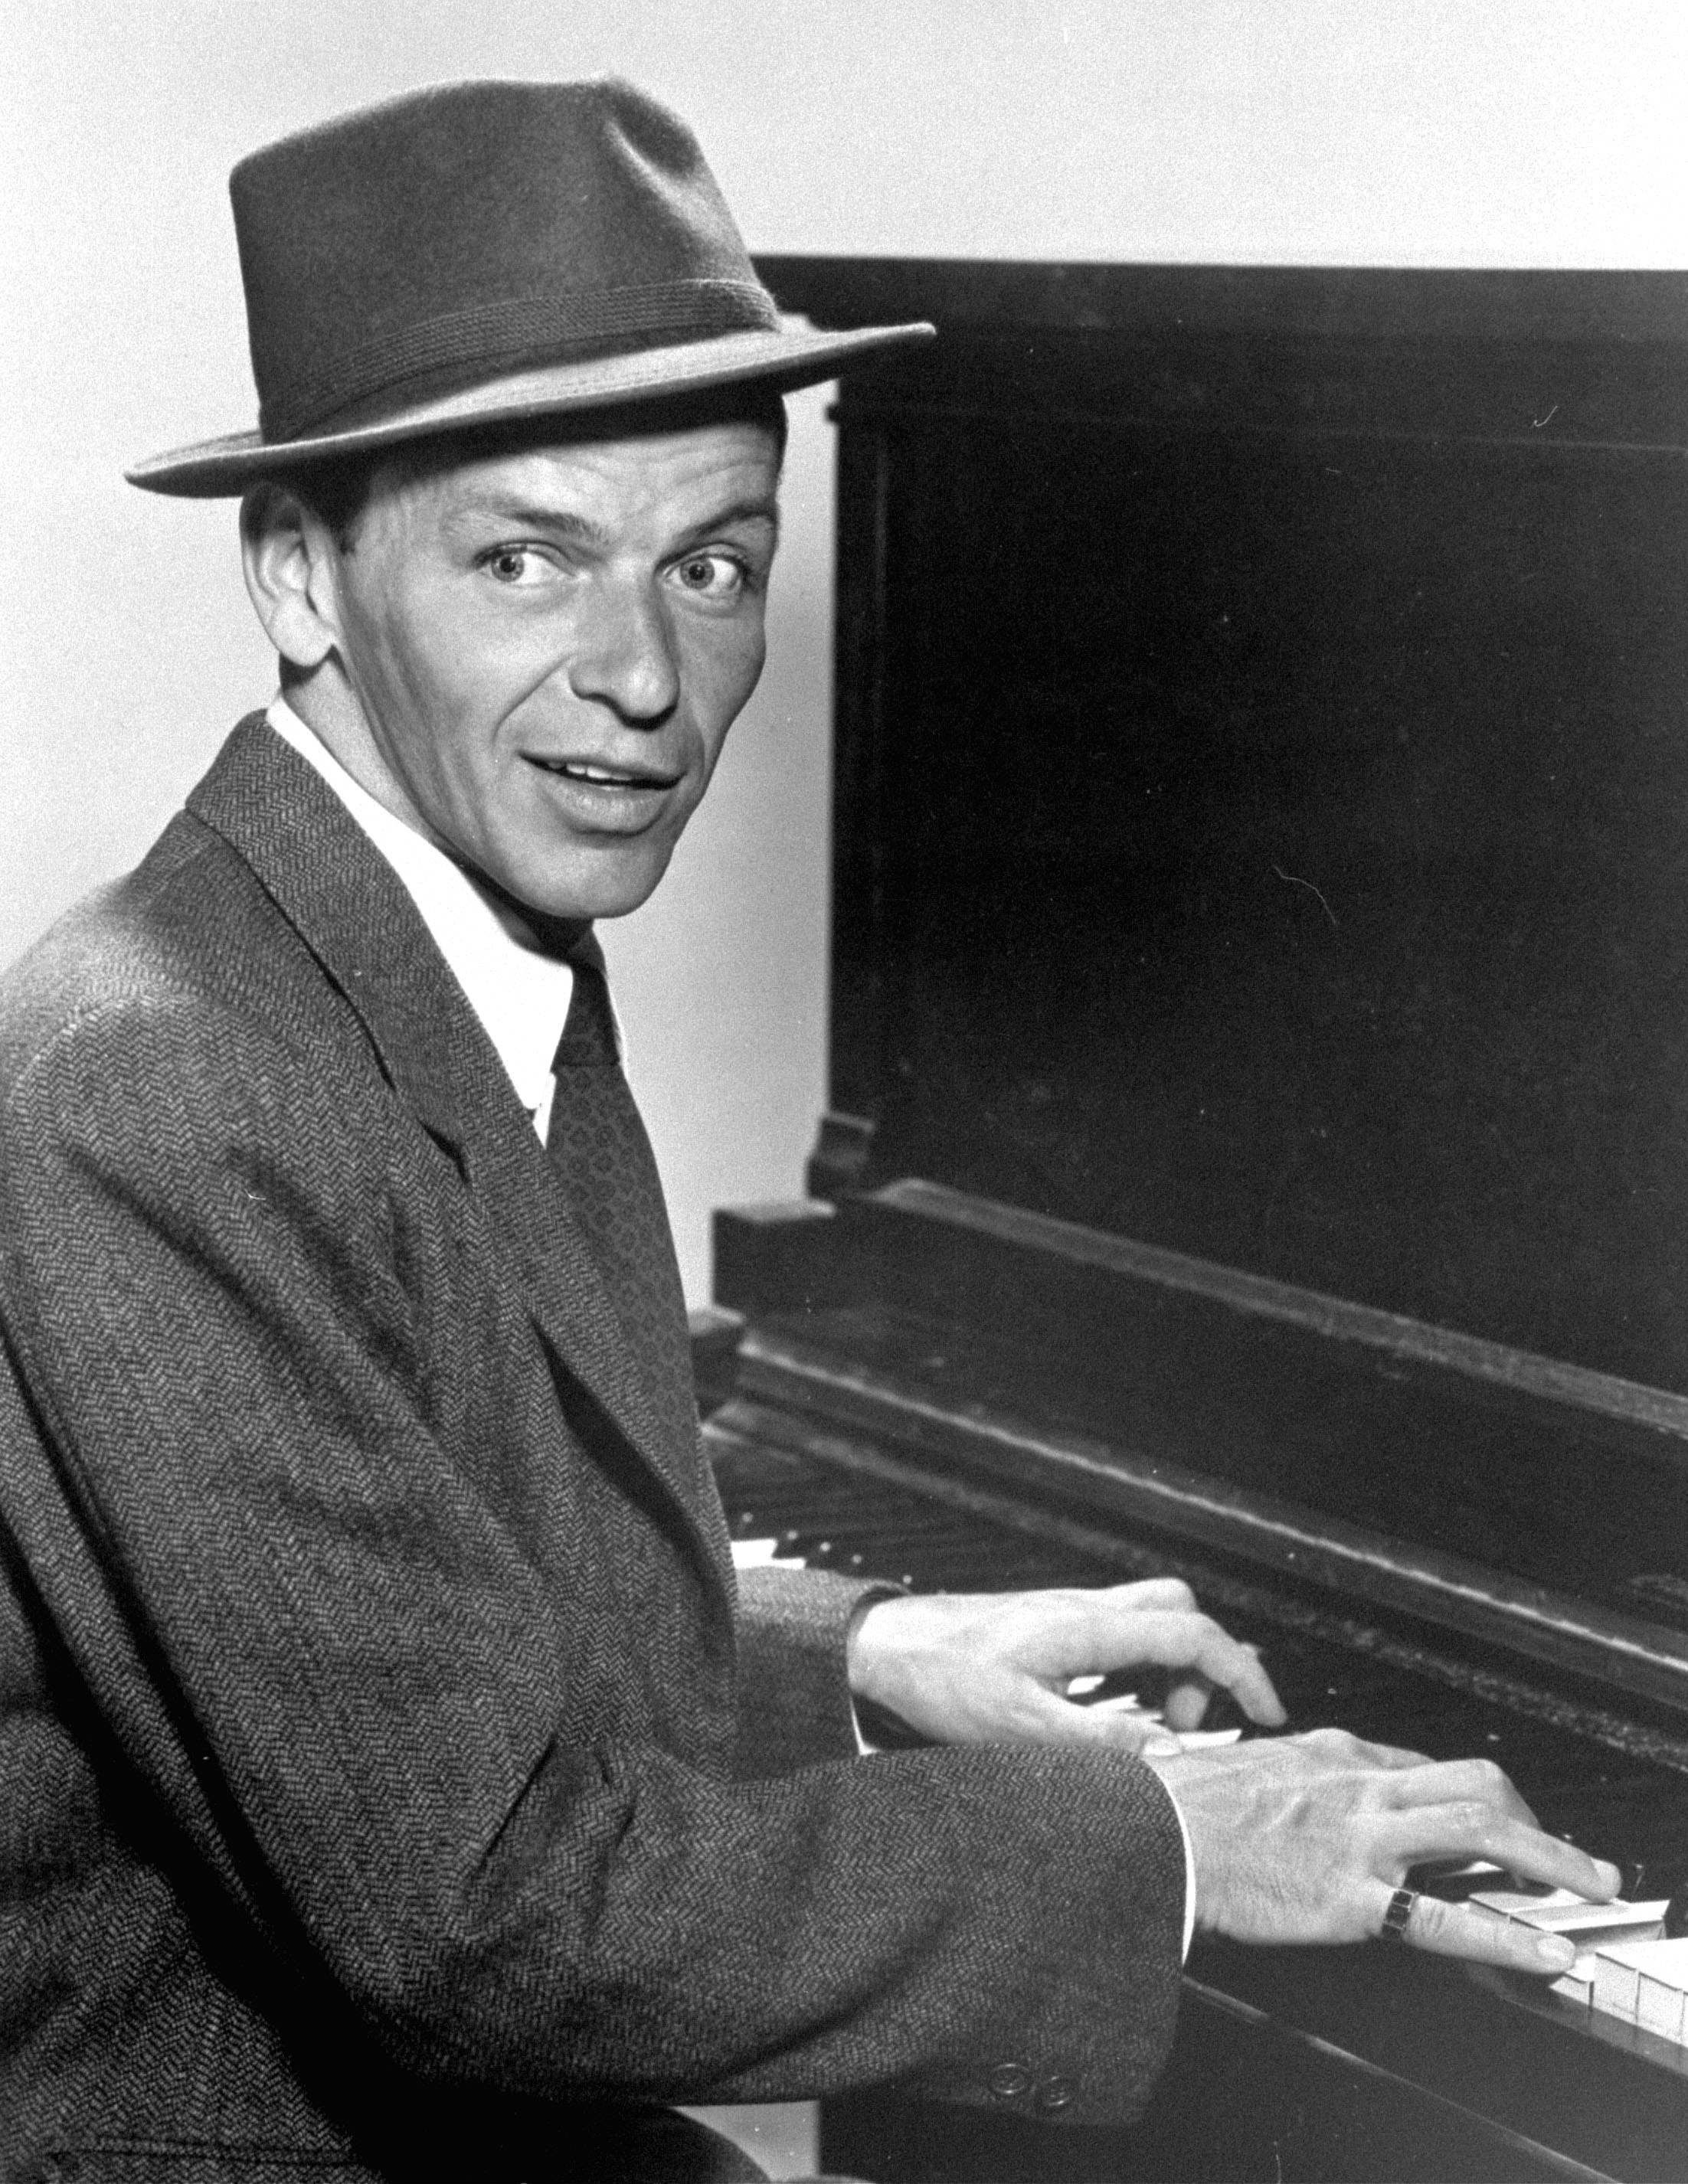 Фрэнк Синатра - Frank Sinatra фото №211519: http://www.theplace.ru/photos/photo.php?id=211519